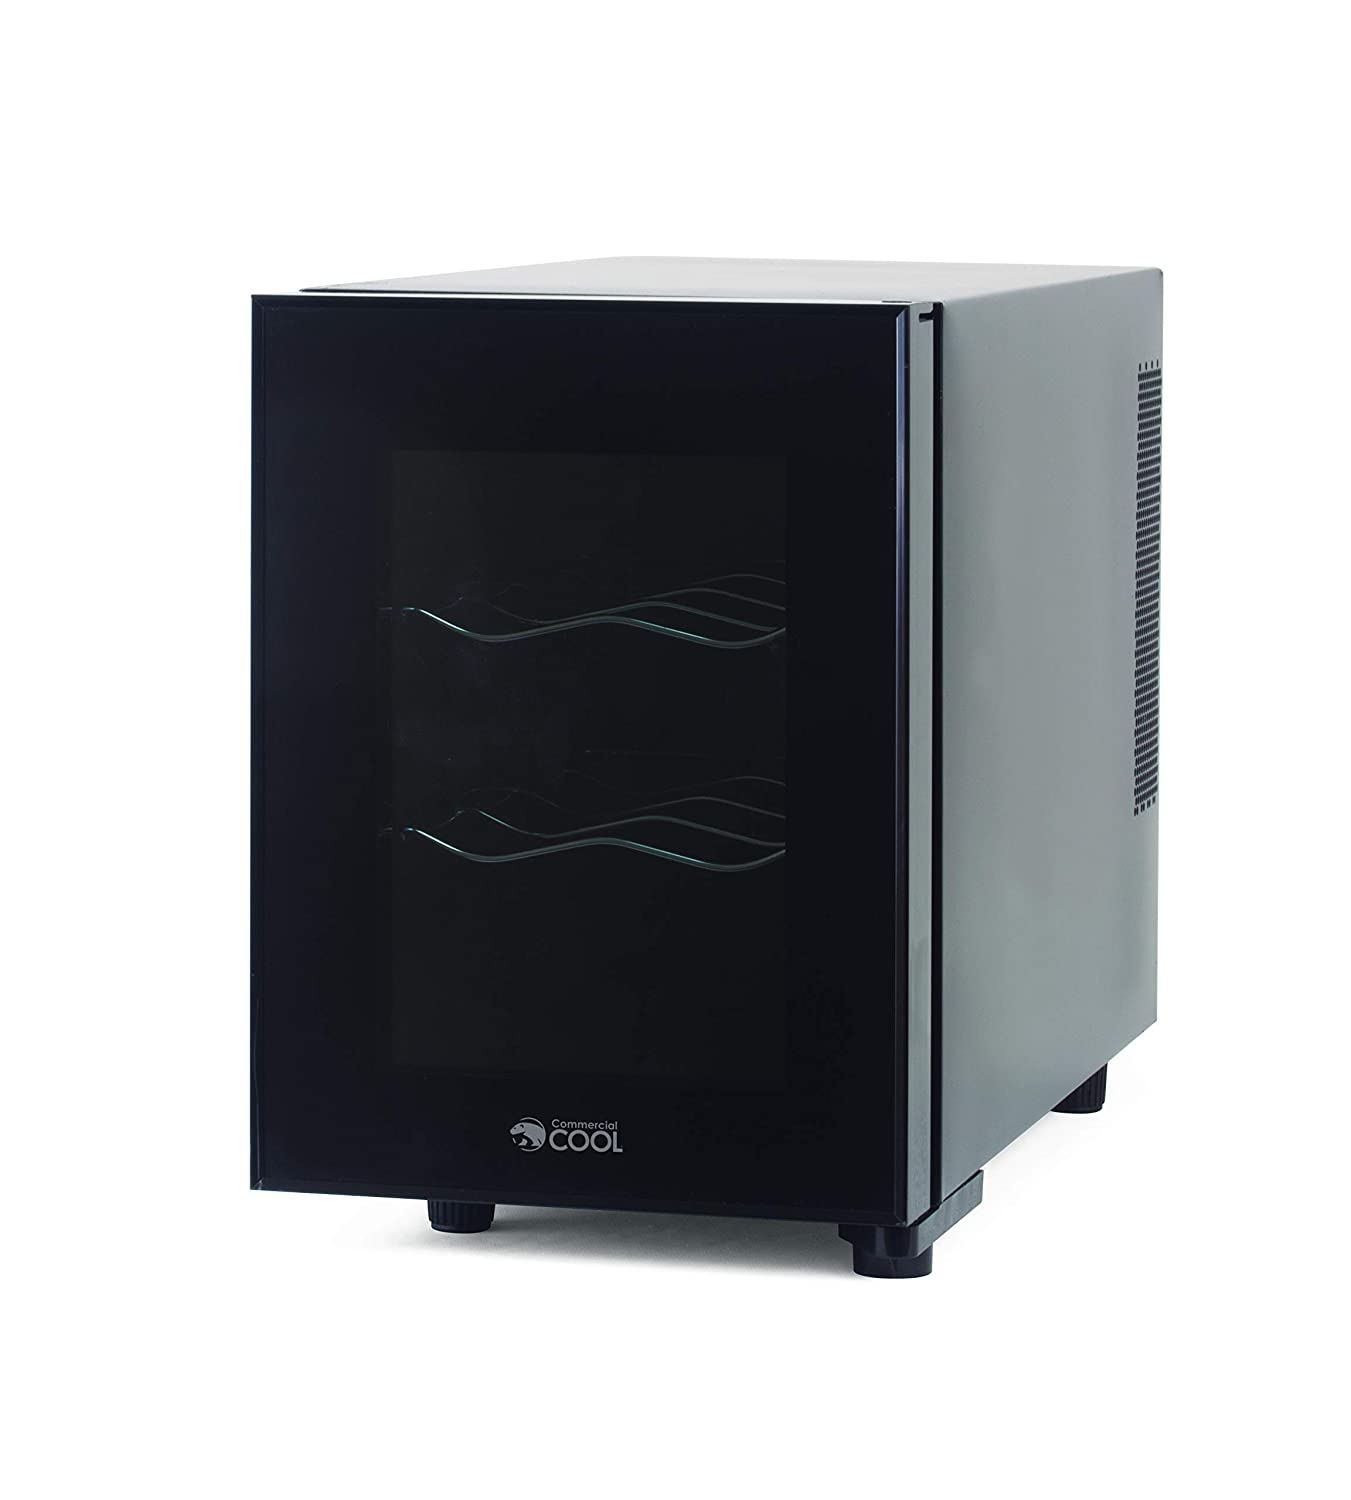 Commercial Cool CCWT060MB Thermal Electric 6 Bottle Wine Cellar Renewed Black